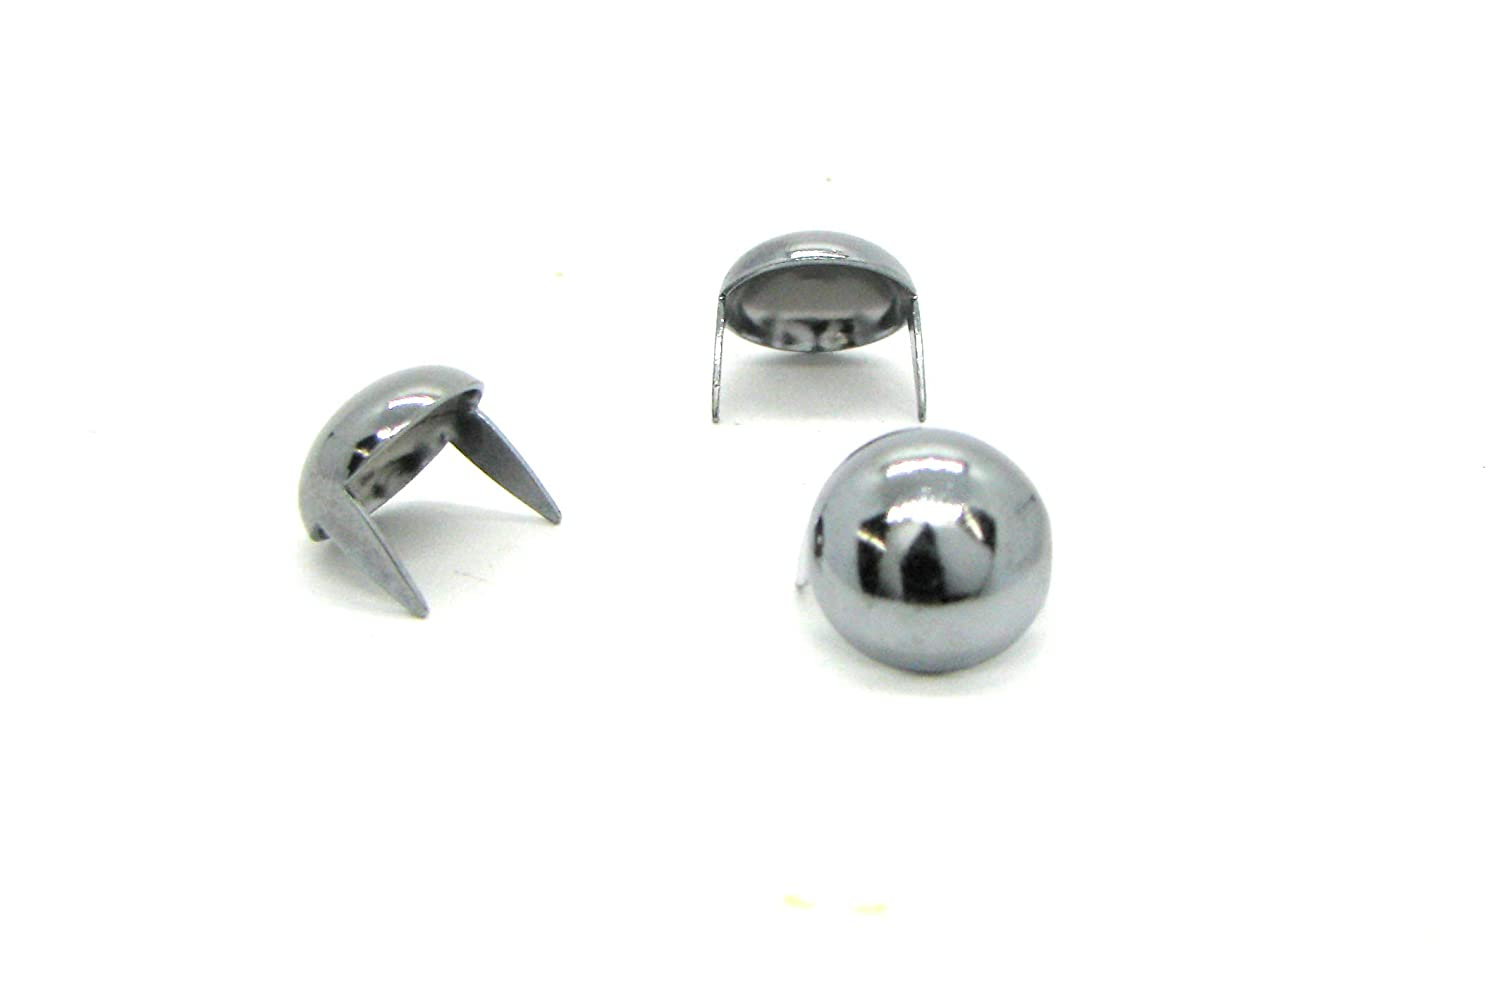 Chrome Dome Studs - Size 13 - Brass Base Metal Studs - Ideally Used for Denim and Leather Work - Classic Two-Prong Studs - Pack of 25 StudsAndSpikes